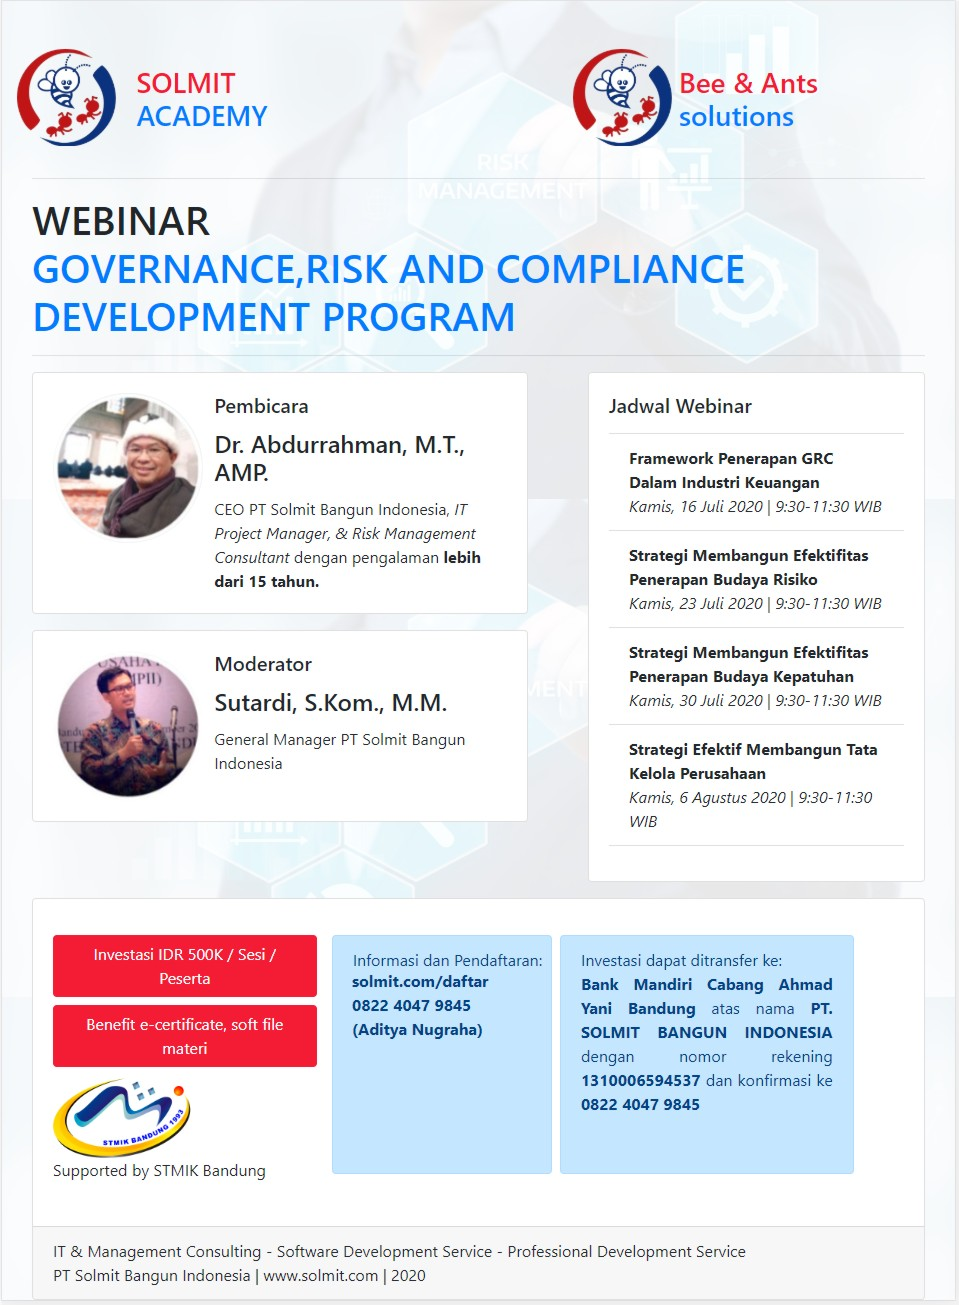 GOVERNANCE RISK & COMPLIANCE PROGRAM (JULI)